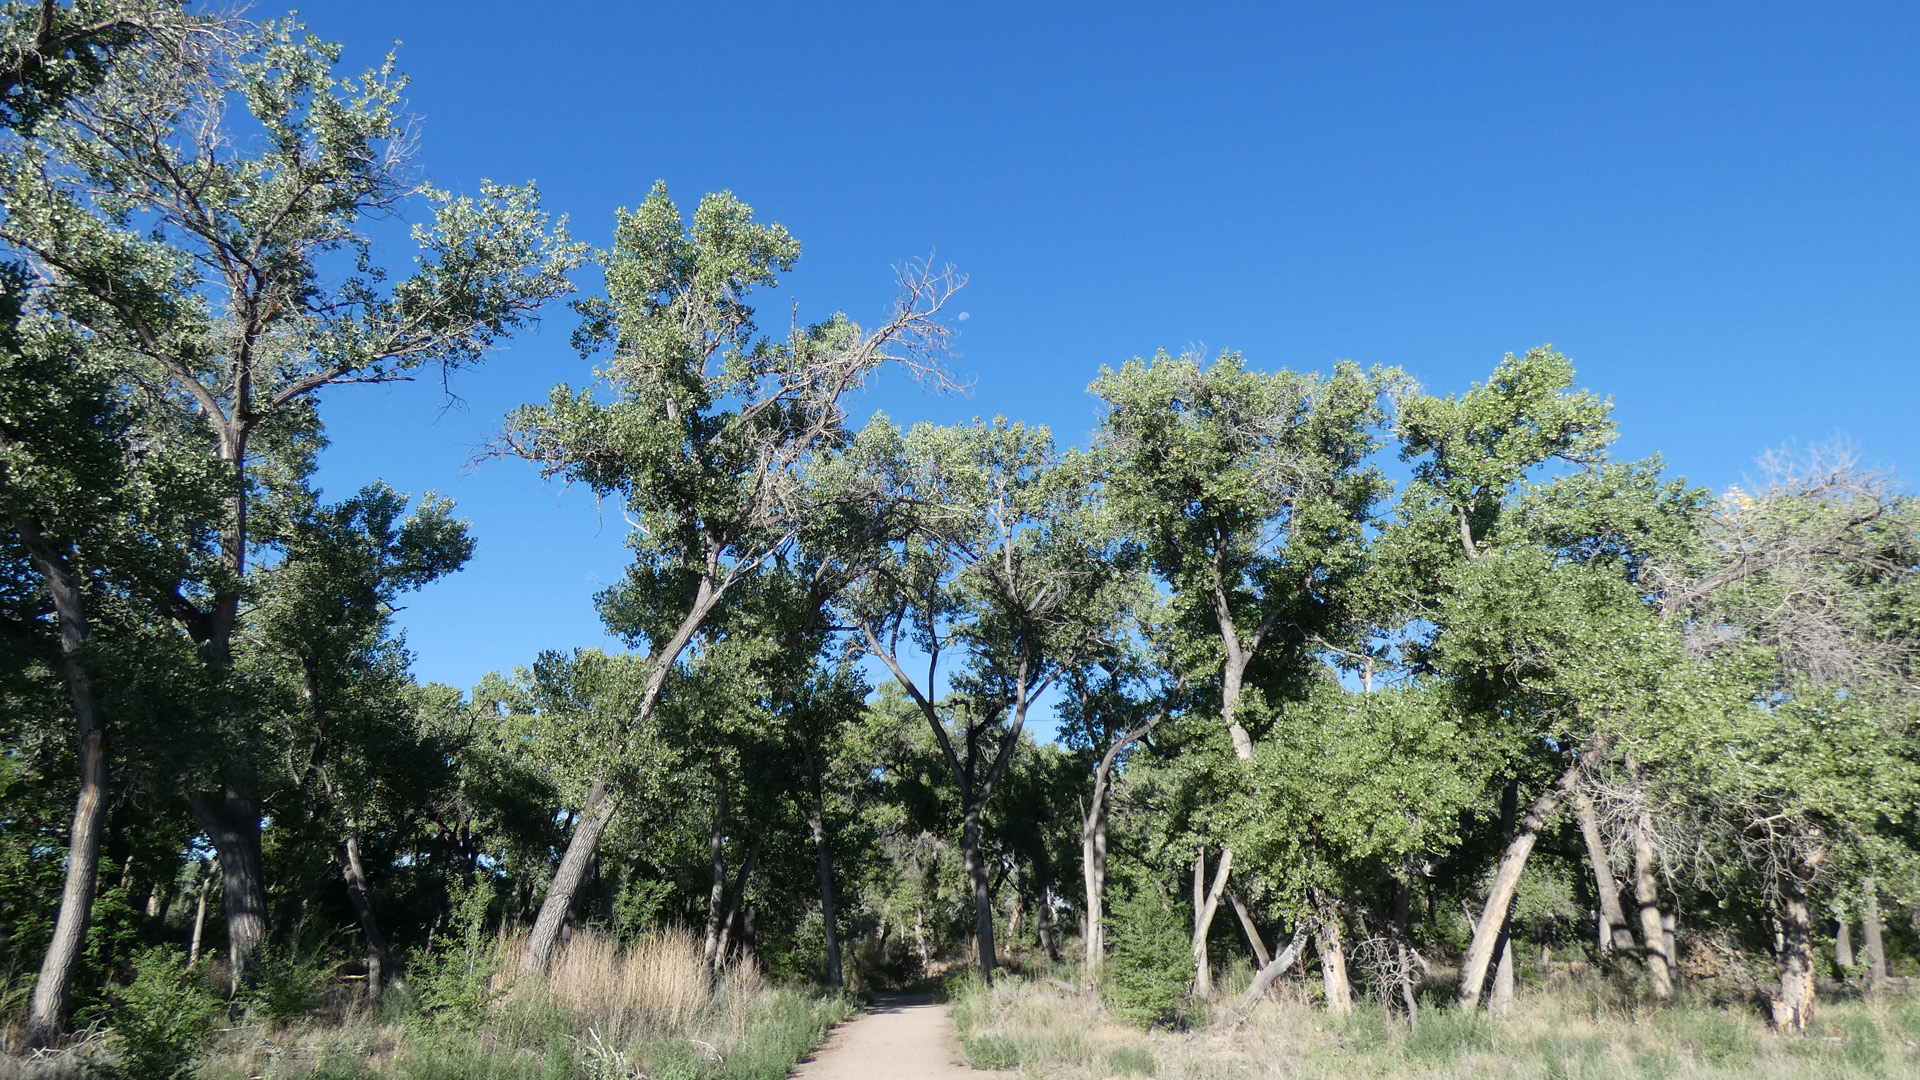 Rio Grande Bosque, Albuquerque, August 2020